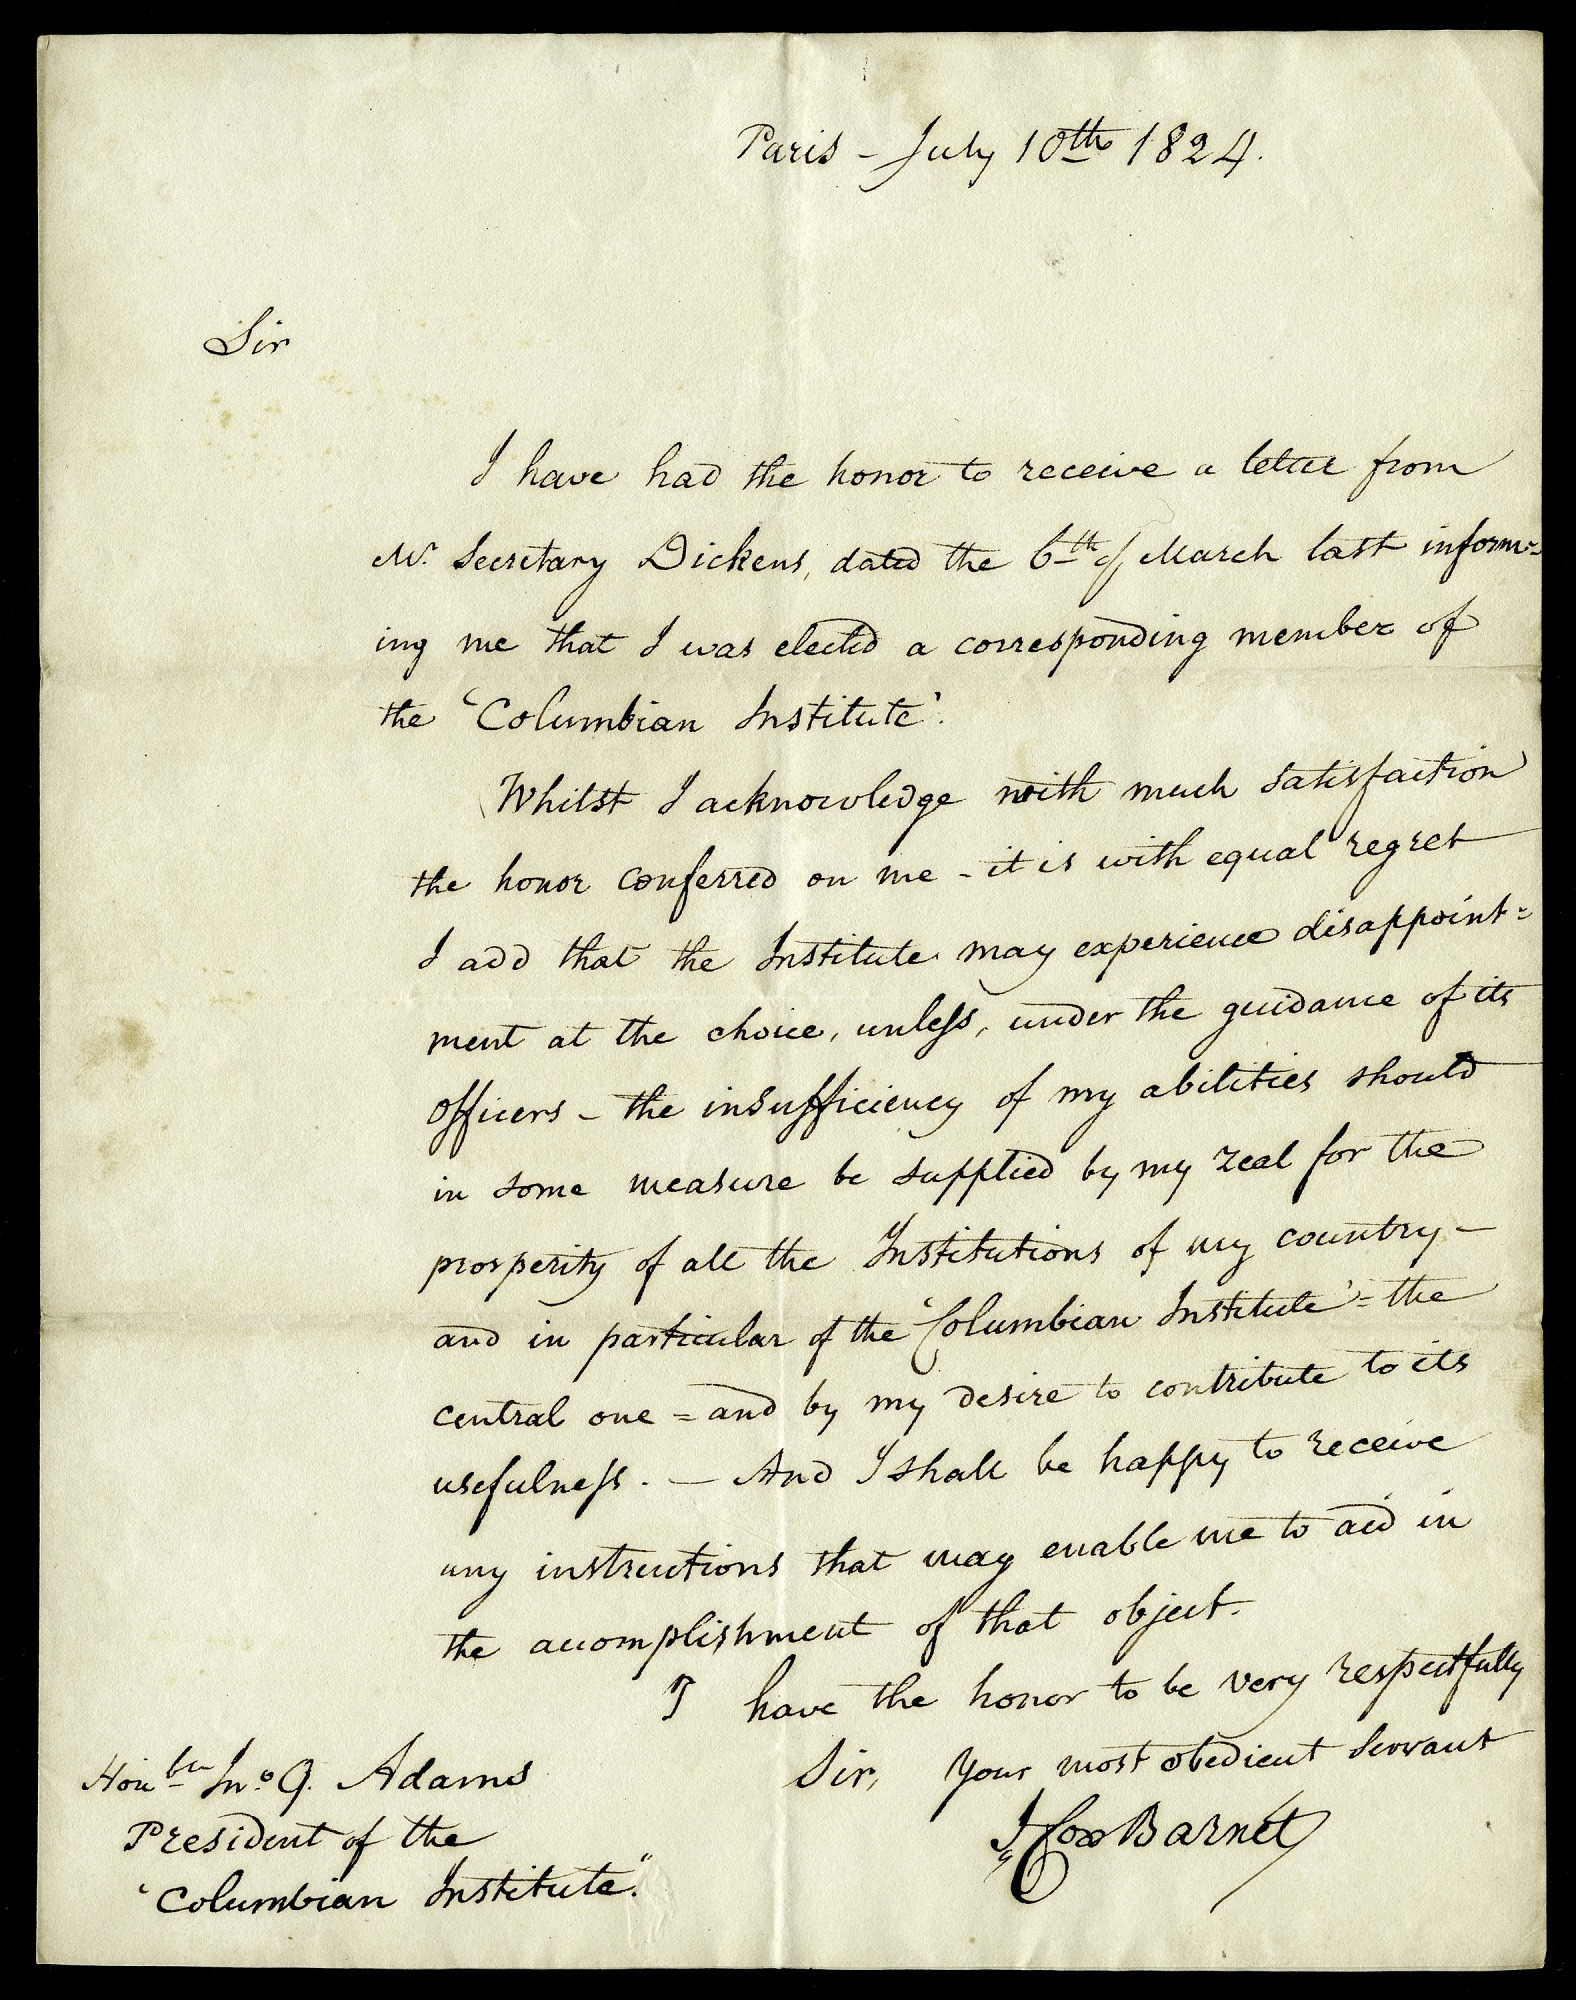 Letter from J. Cox Barnett to the Honorable John Quincy Adams, President of the Columbian Institute, July 10, 1824